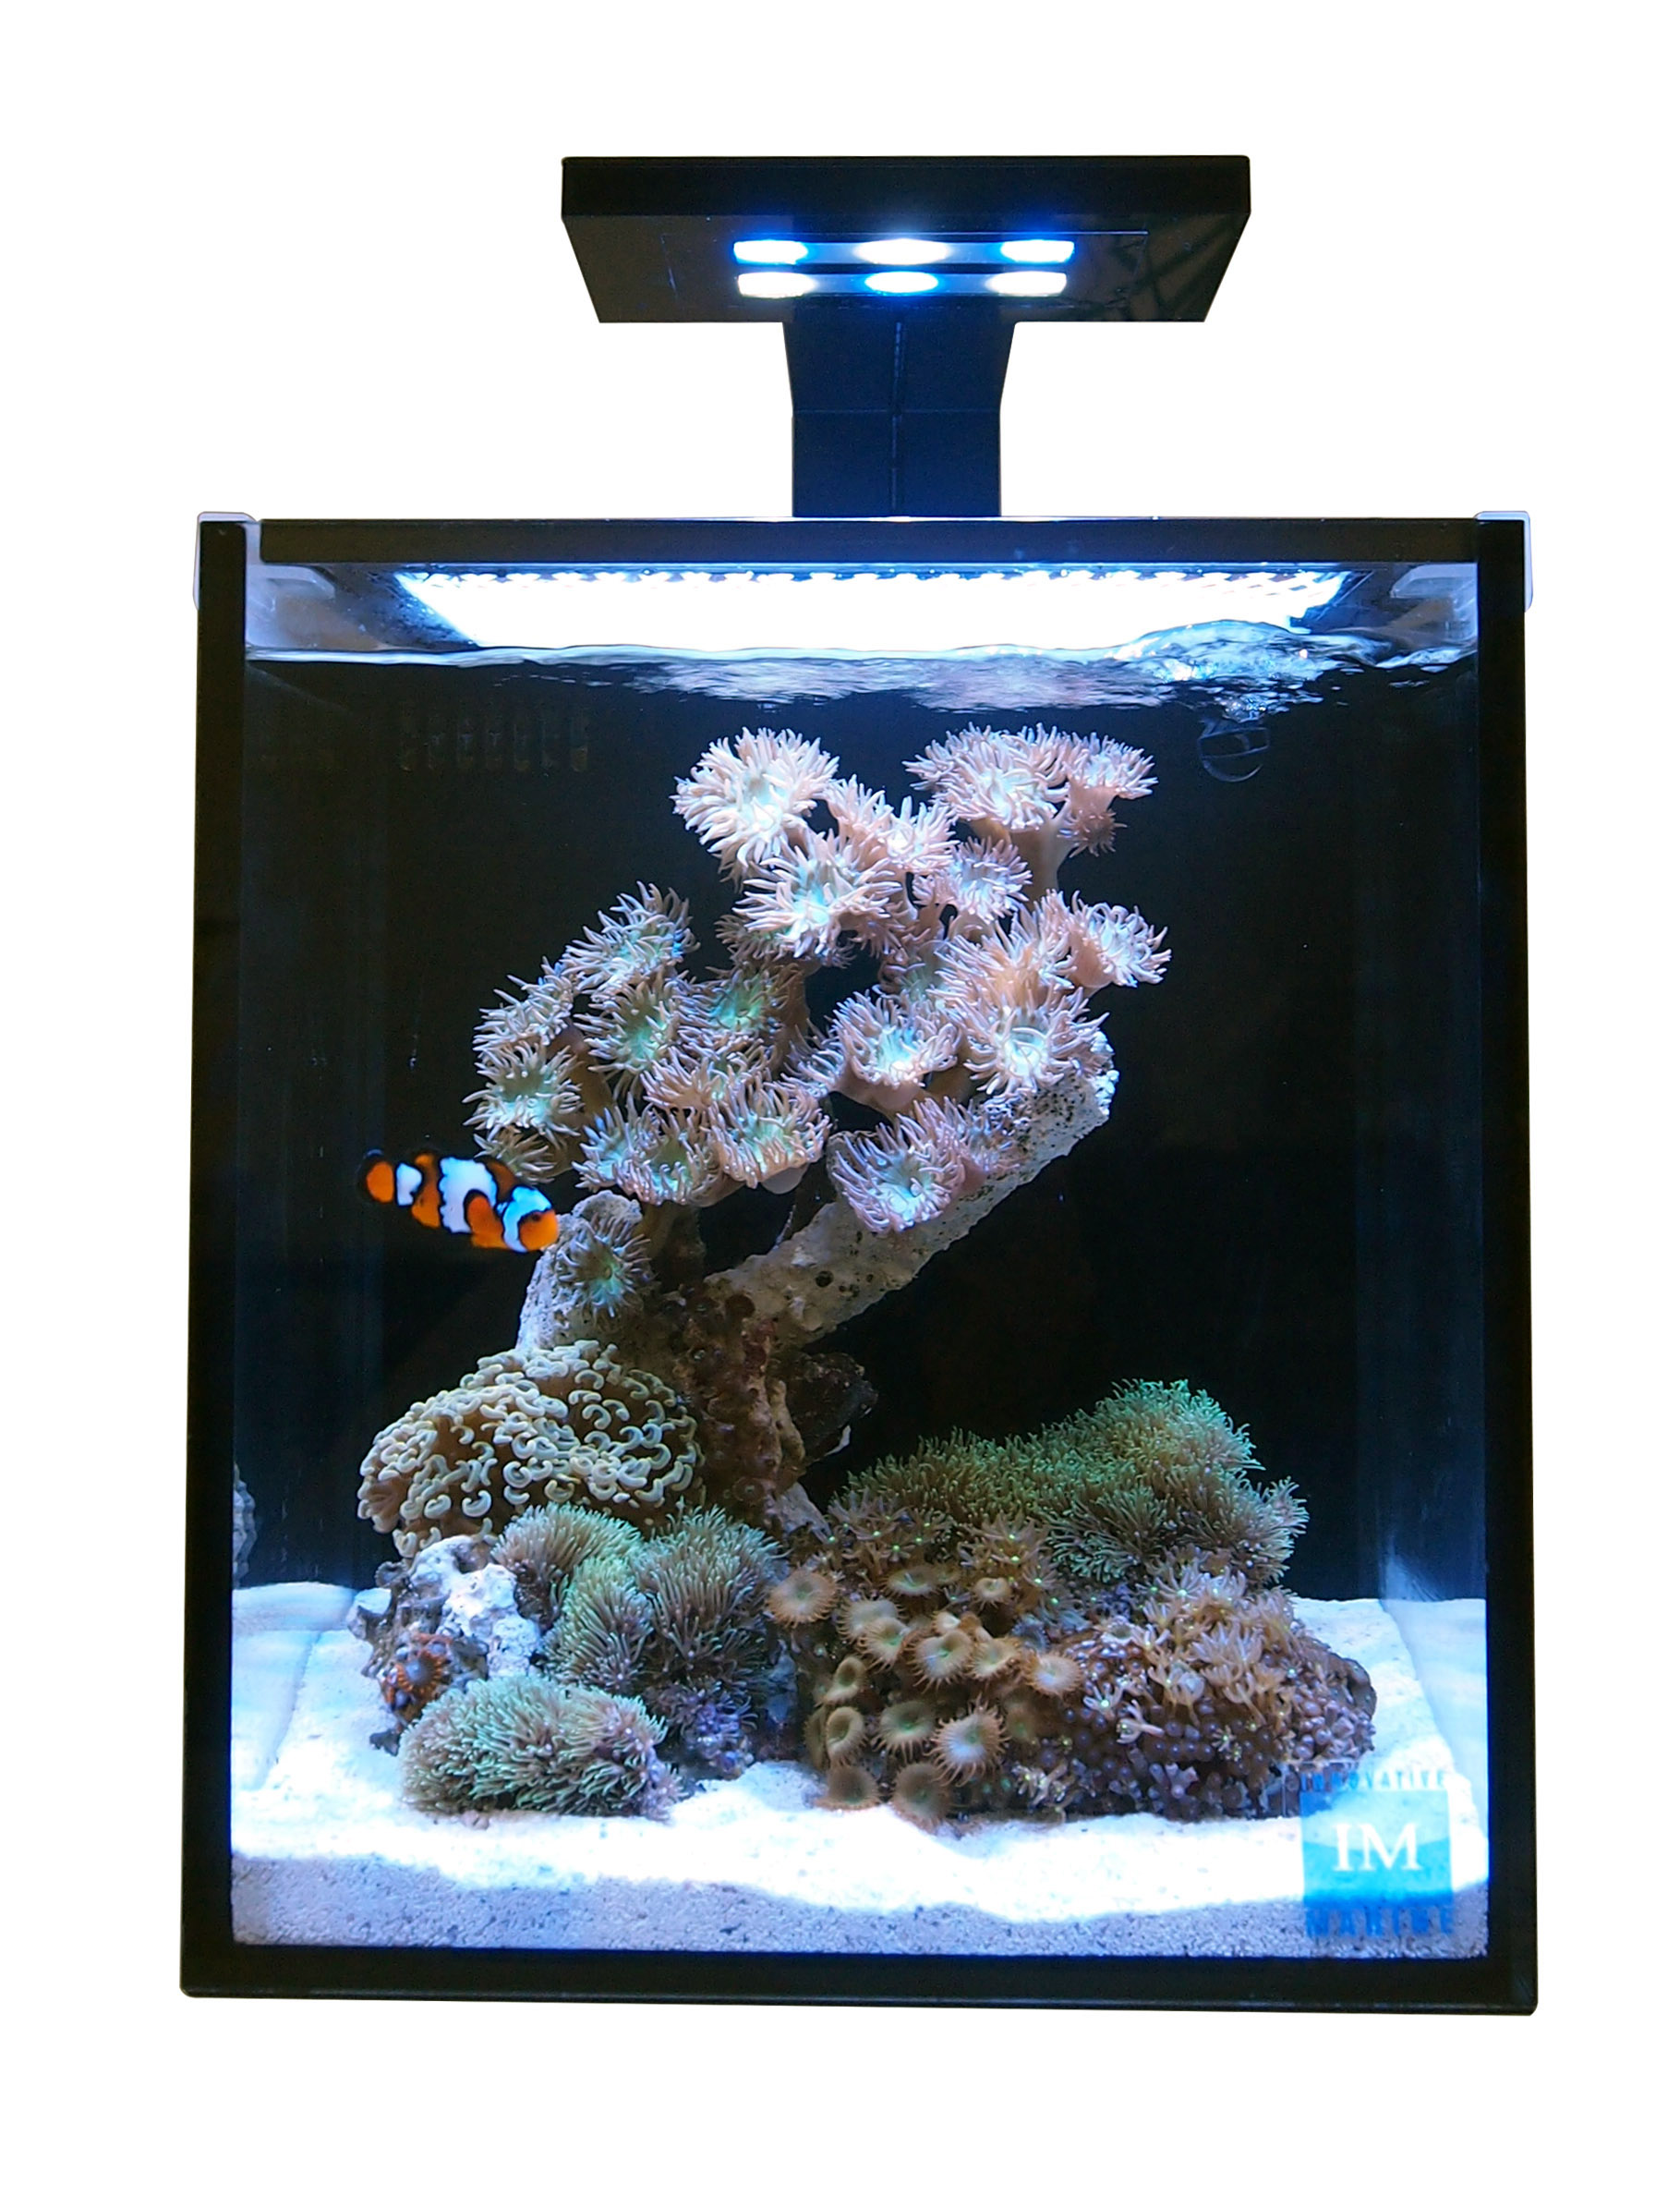 10 NUVO Fusion Tank with SKKYE LED Light Innovative Marine Bulk